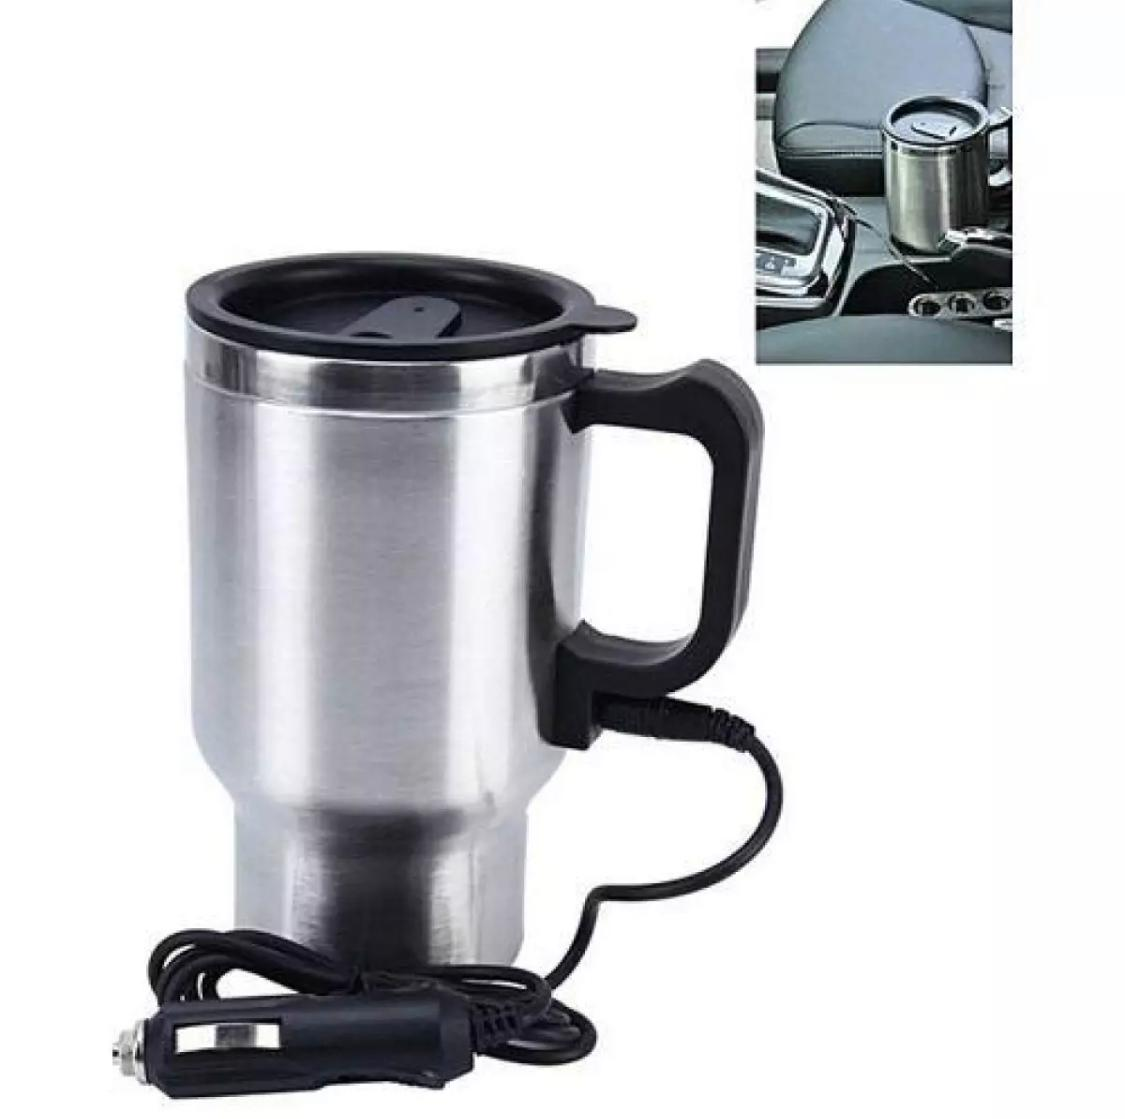 Car_Travel_Coffee_And_Tea_Mug_-_Silver1_(2).jpg